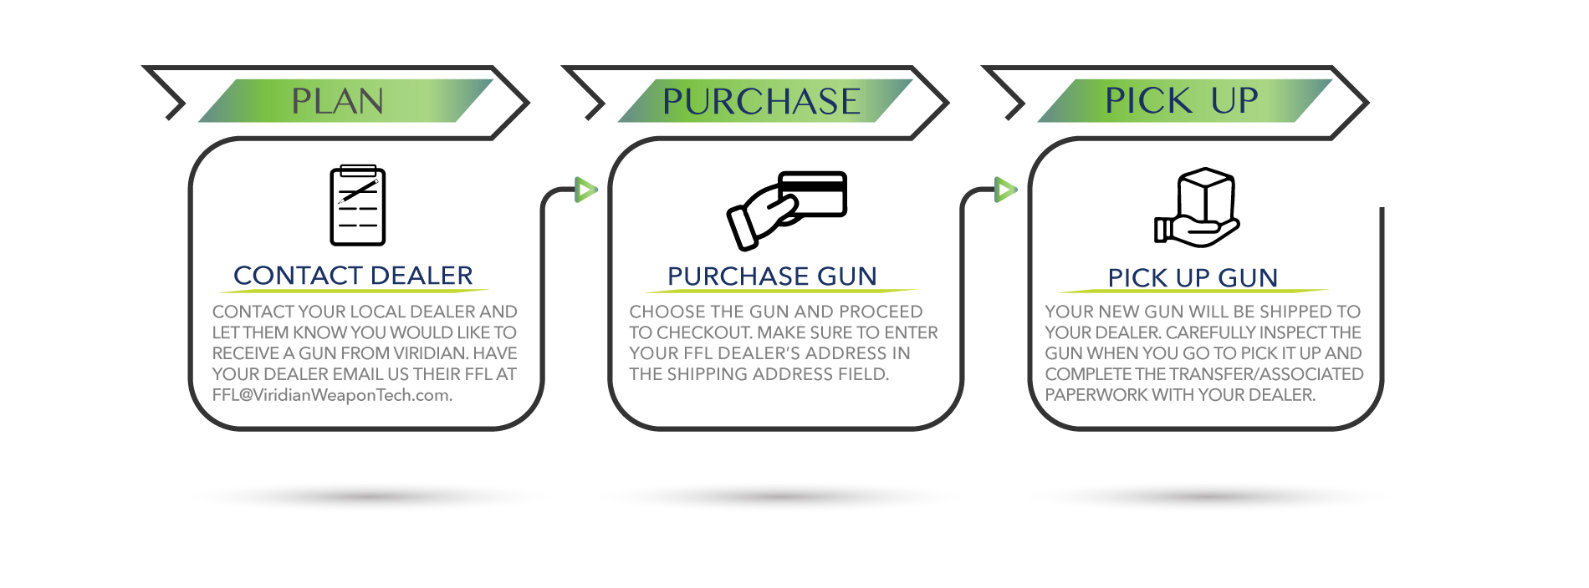 How to buy a gun from Viridian Weapon Technologies